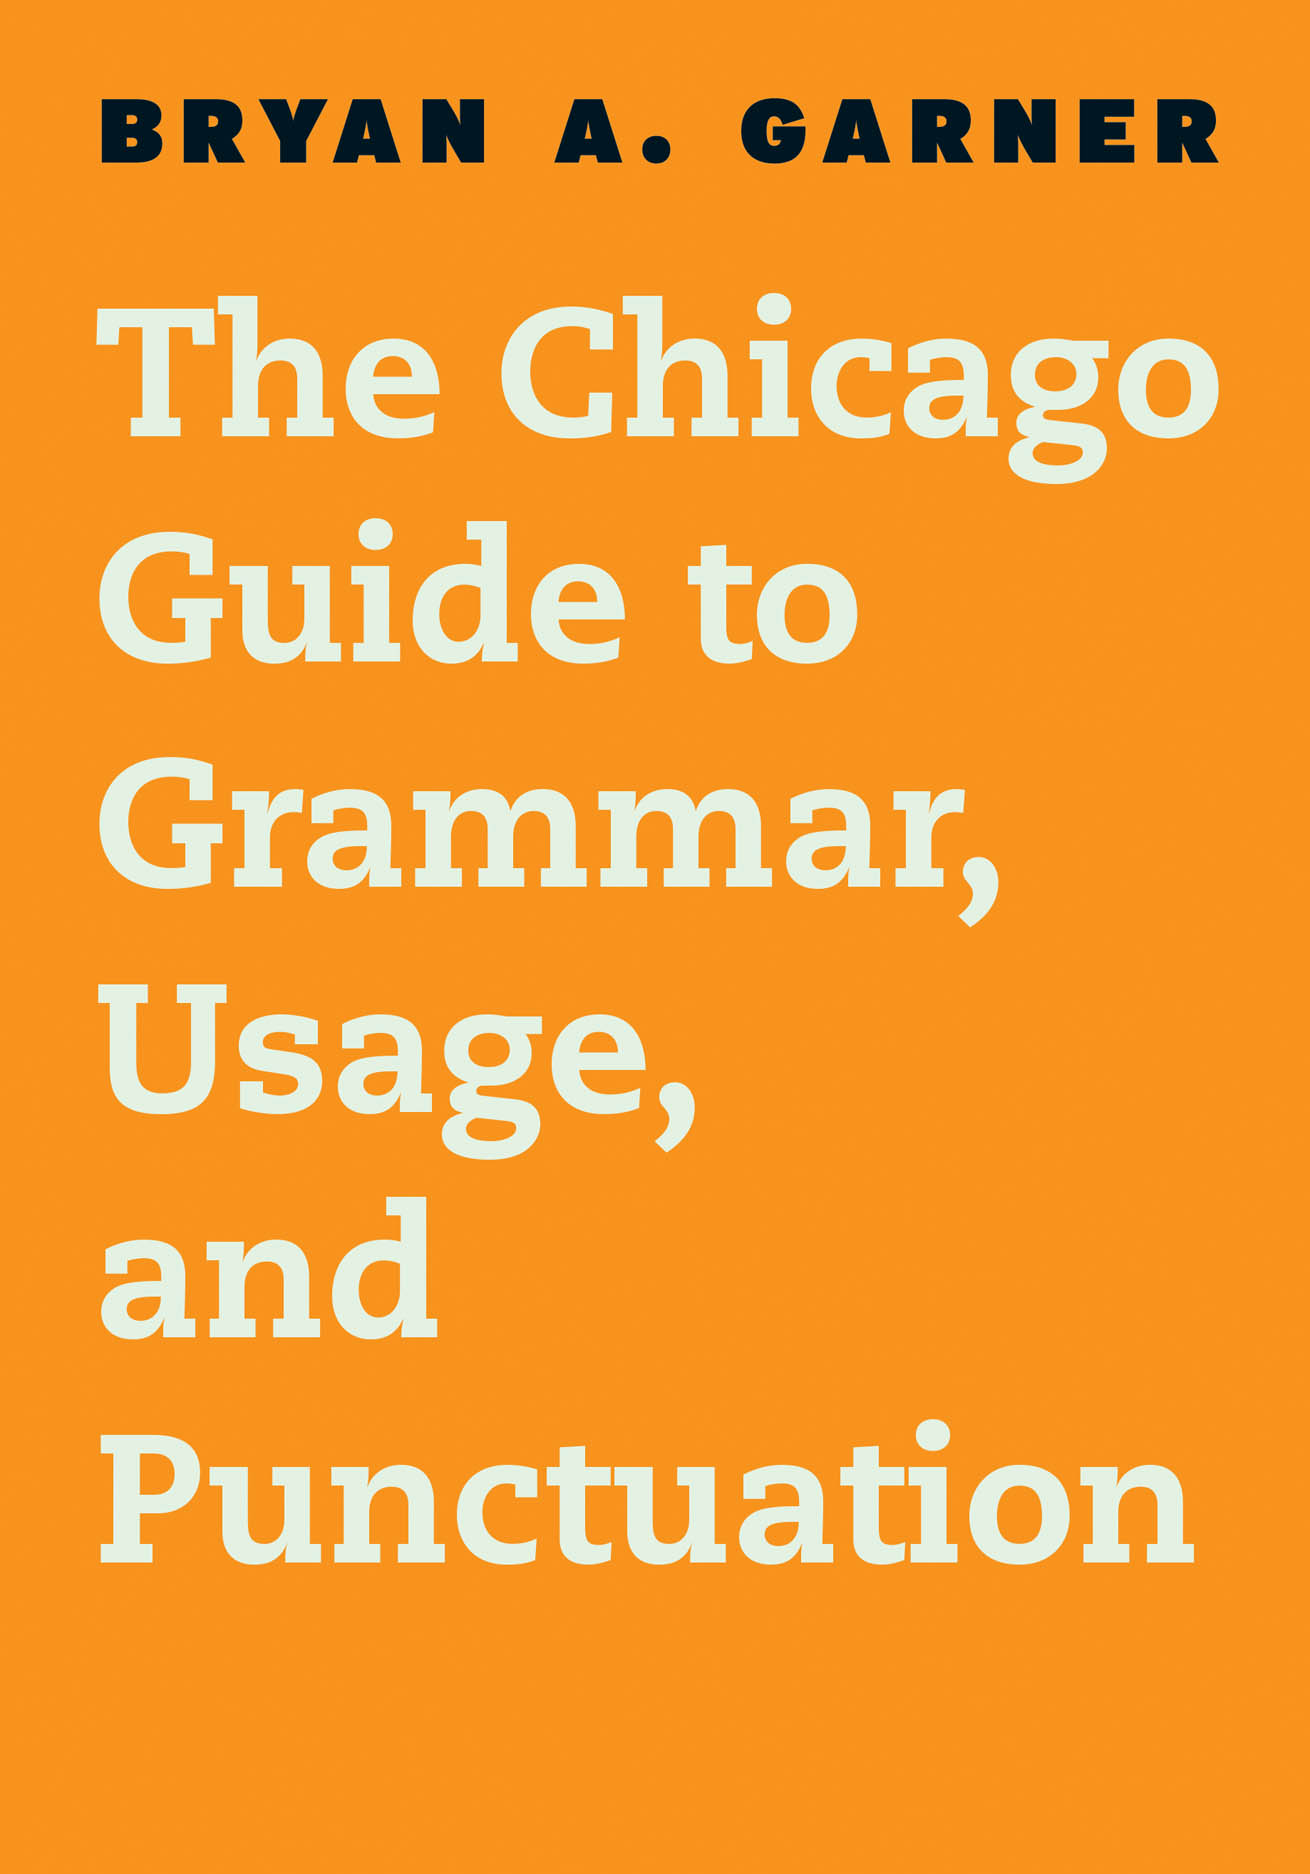 Chicago Guide to Grammar, Usage, and Punctuation